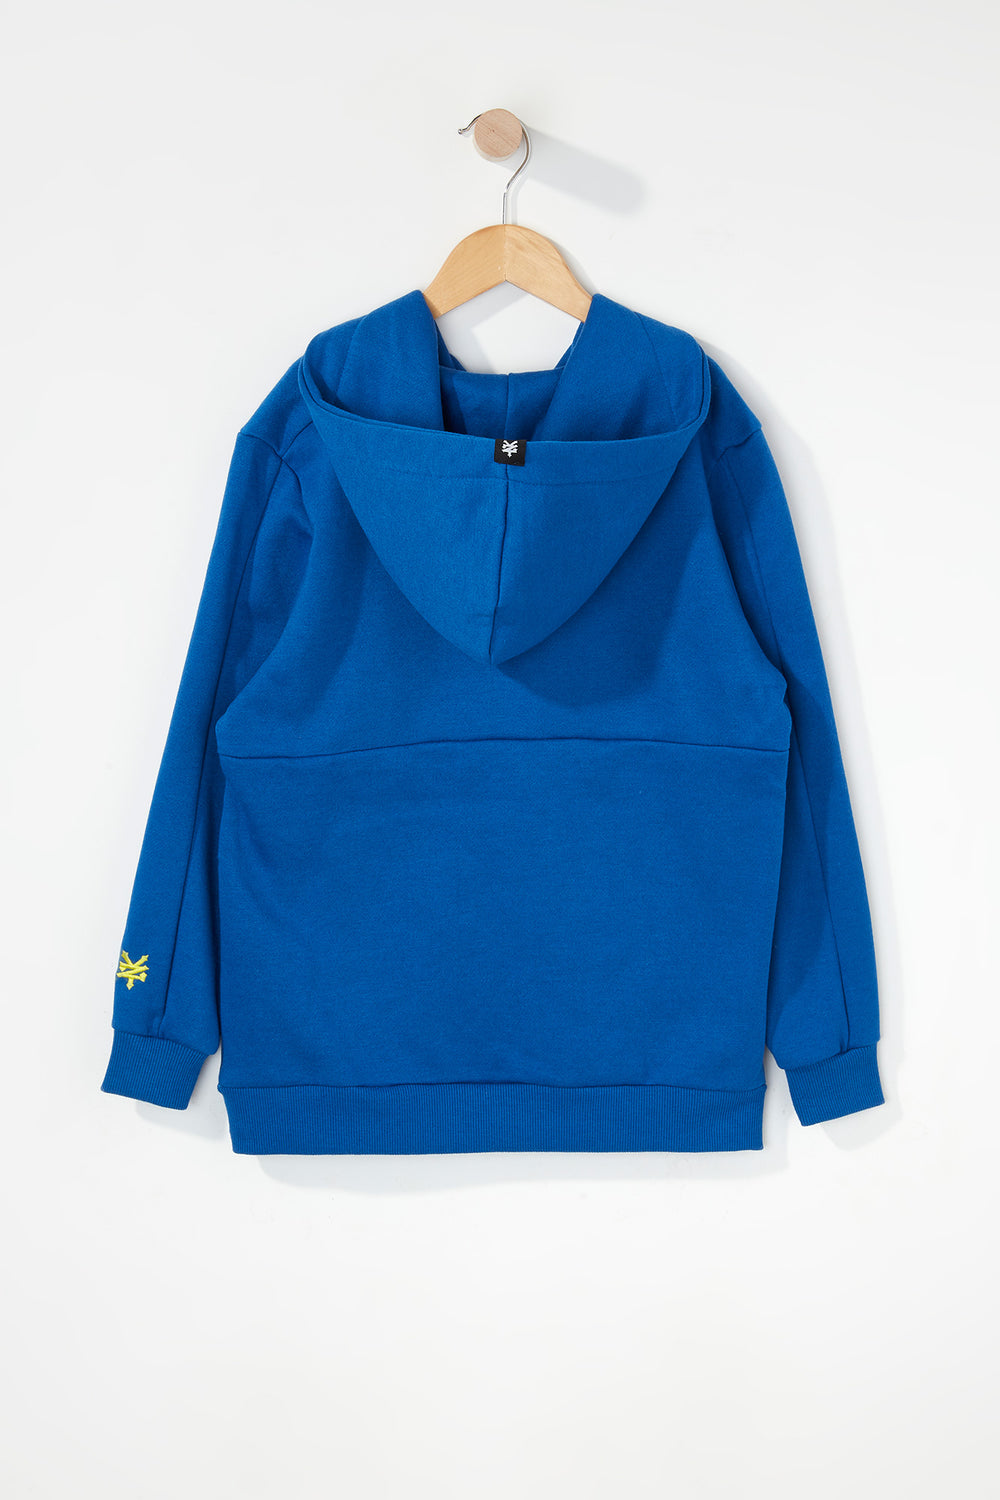 Zoo York Boys Embroidered Logo Hoodie Blue